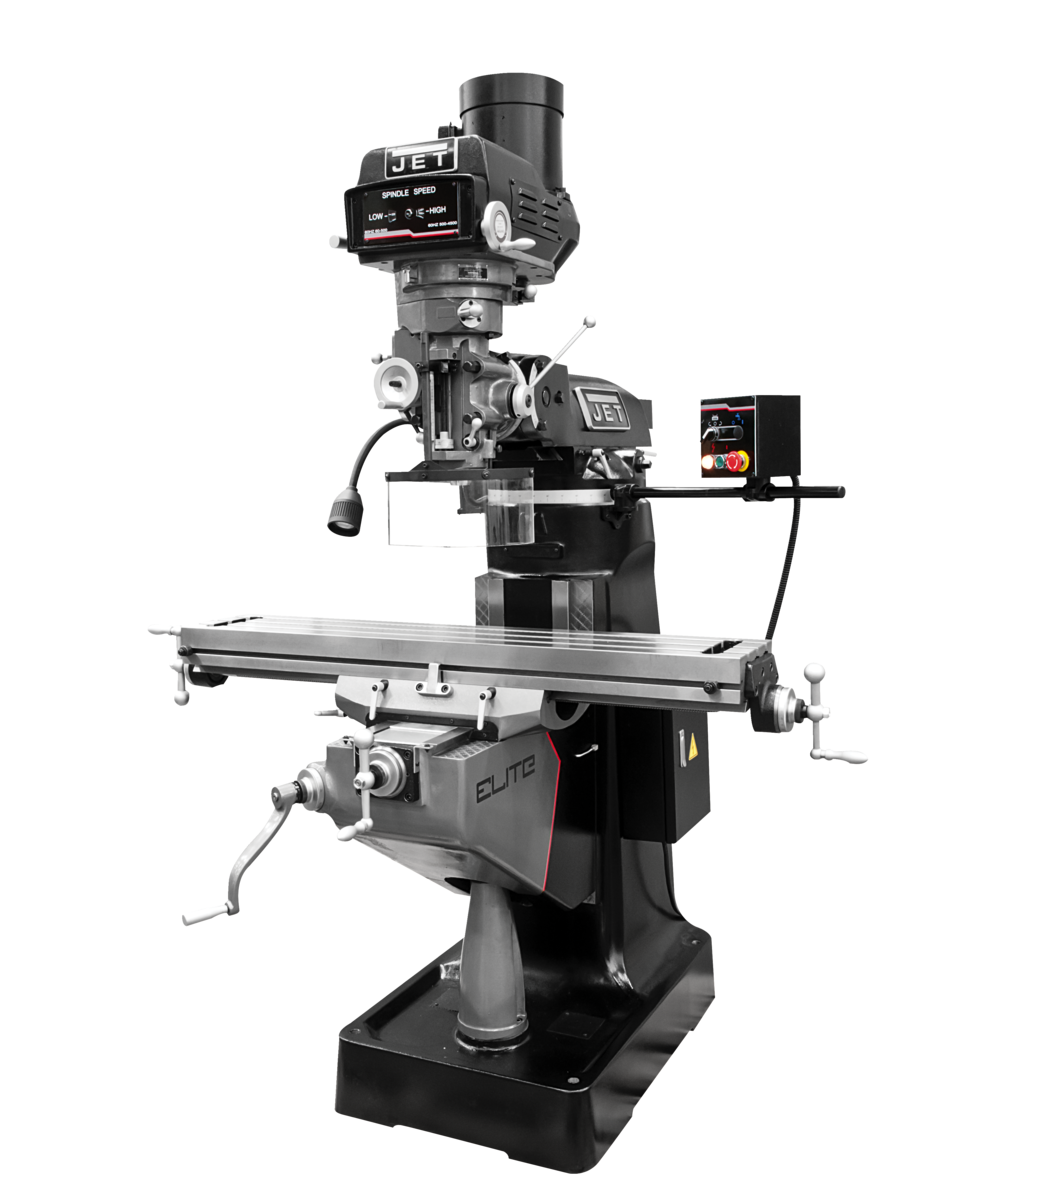 ETM-949 Mill with 3-Axis ACU-RITE 203(Quill) DRO